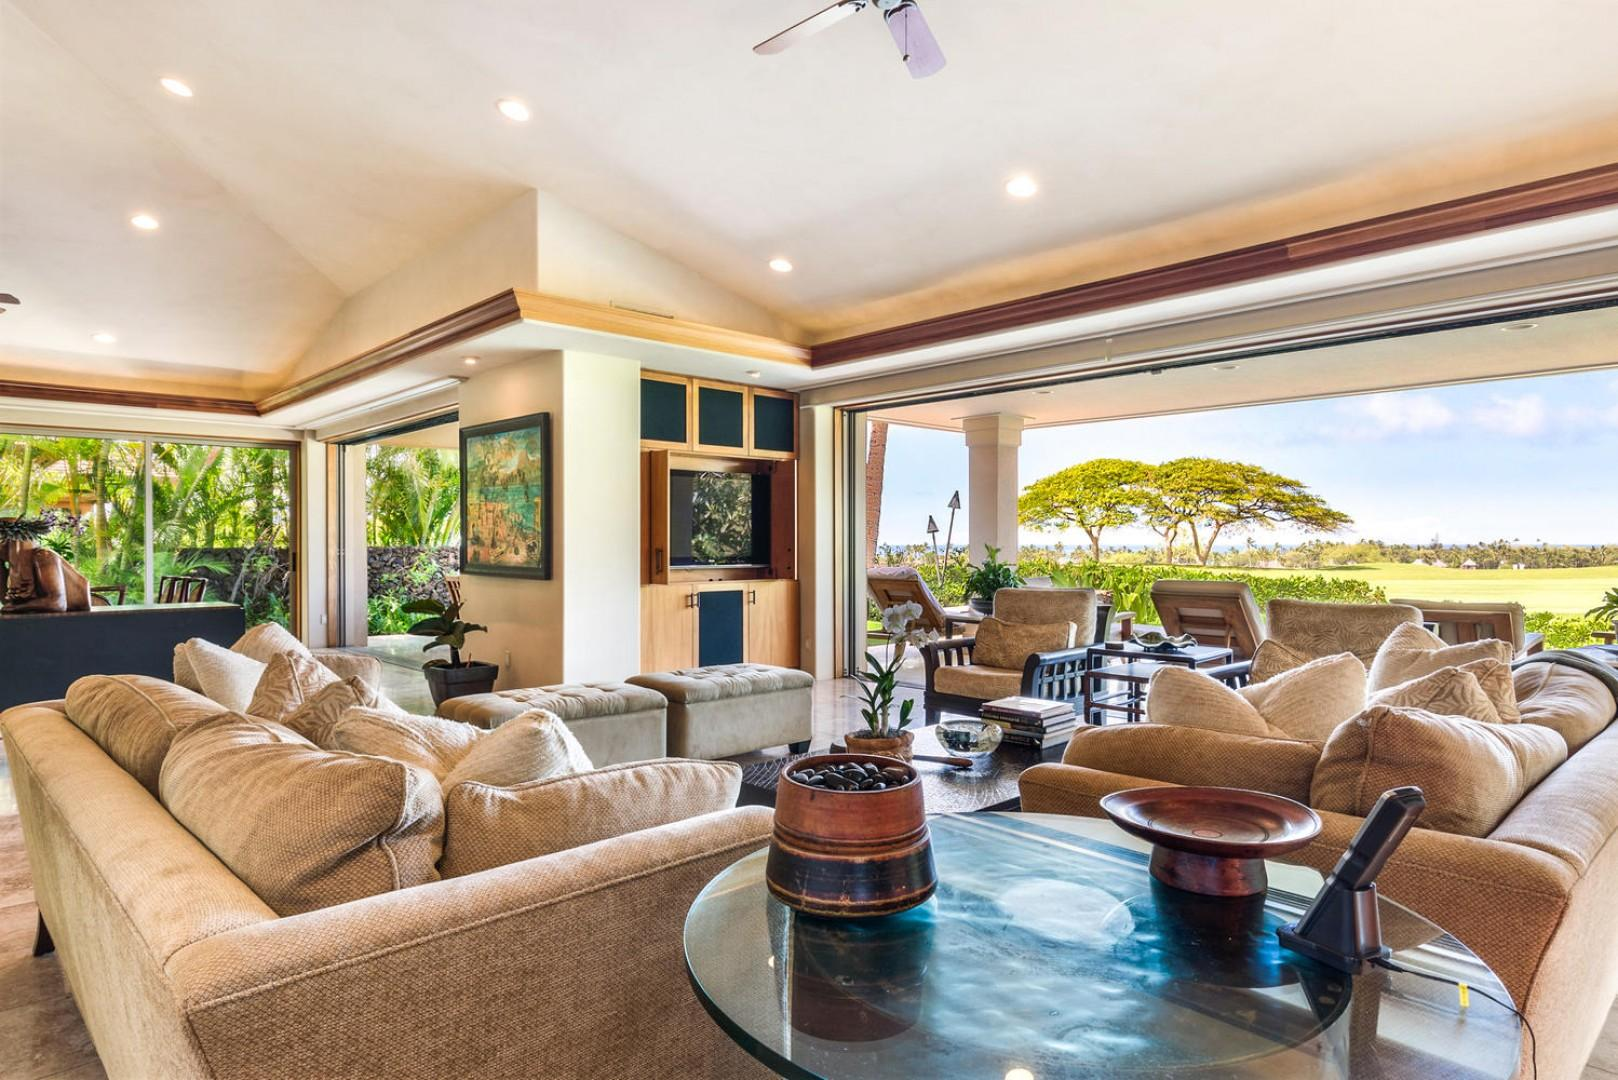 Alternate view of living area featuring two walls of pocket doors opening to outdoor living space.